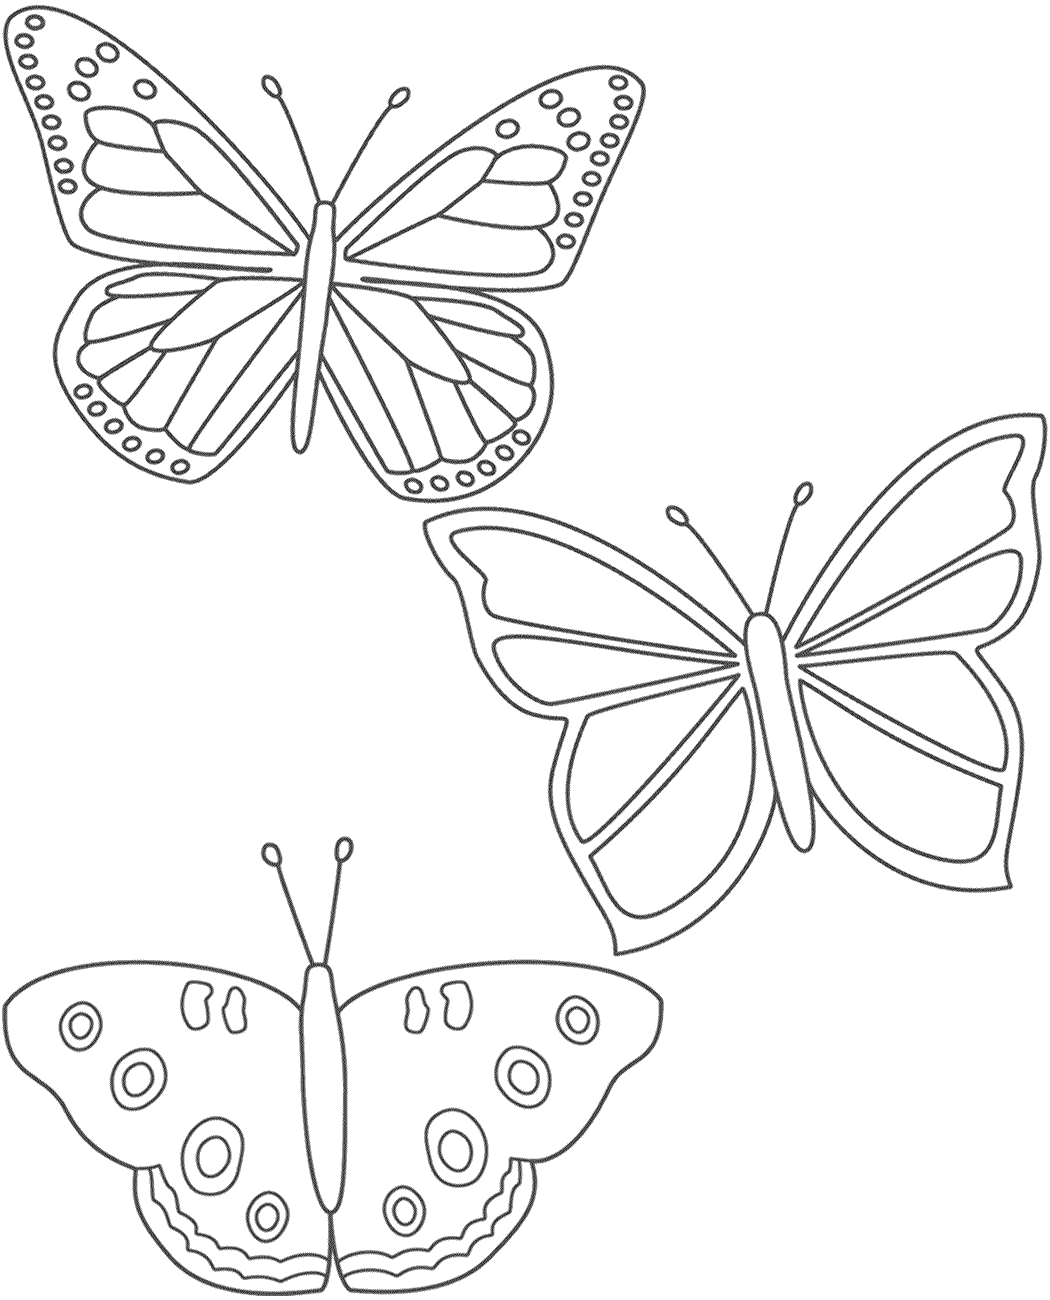 Three Butterflies Coloring Page Insects Butterfly Coloring Page Butterfly Illustration Colorful Butterflies [ 1300 x 1050 Pixel ]